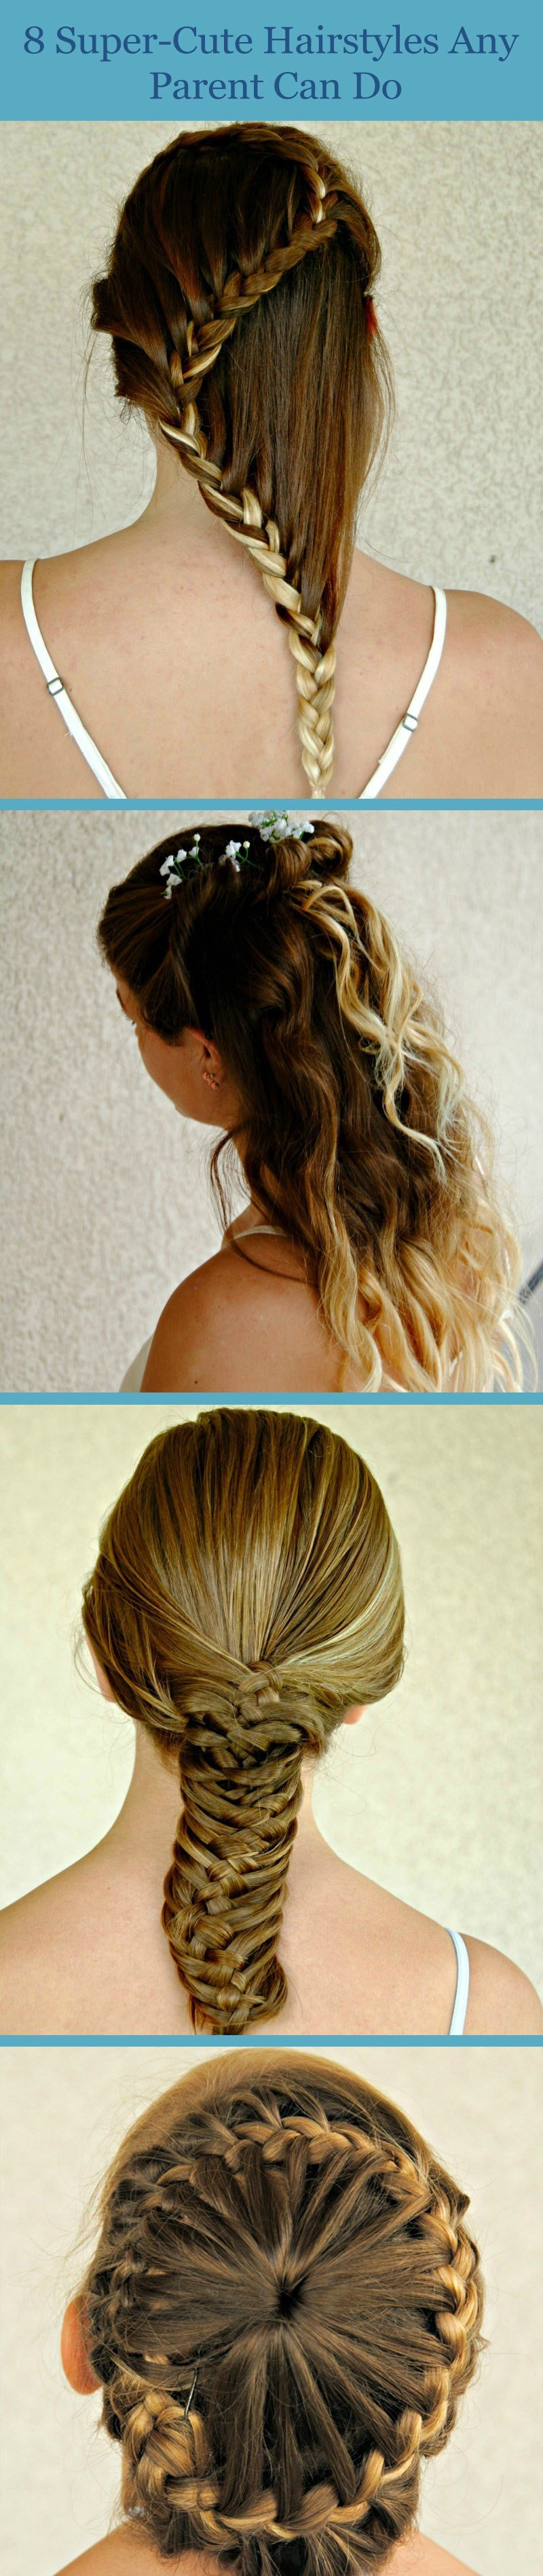 The Best 8 Super Cute Hairstyles Any Parent Can Do Themselves Pictures